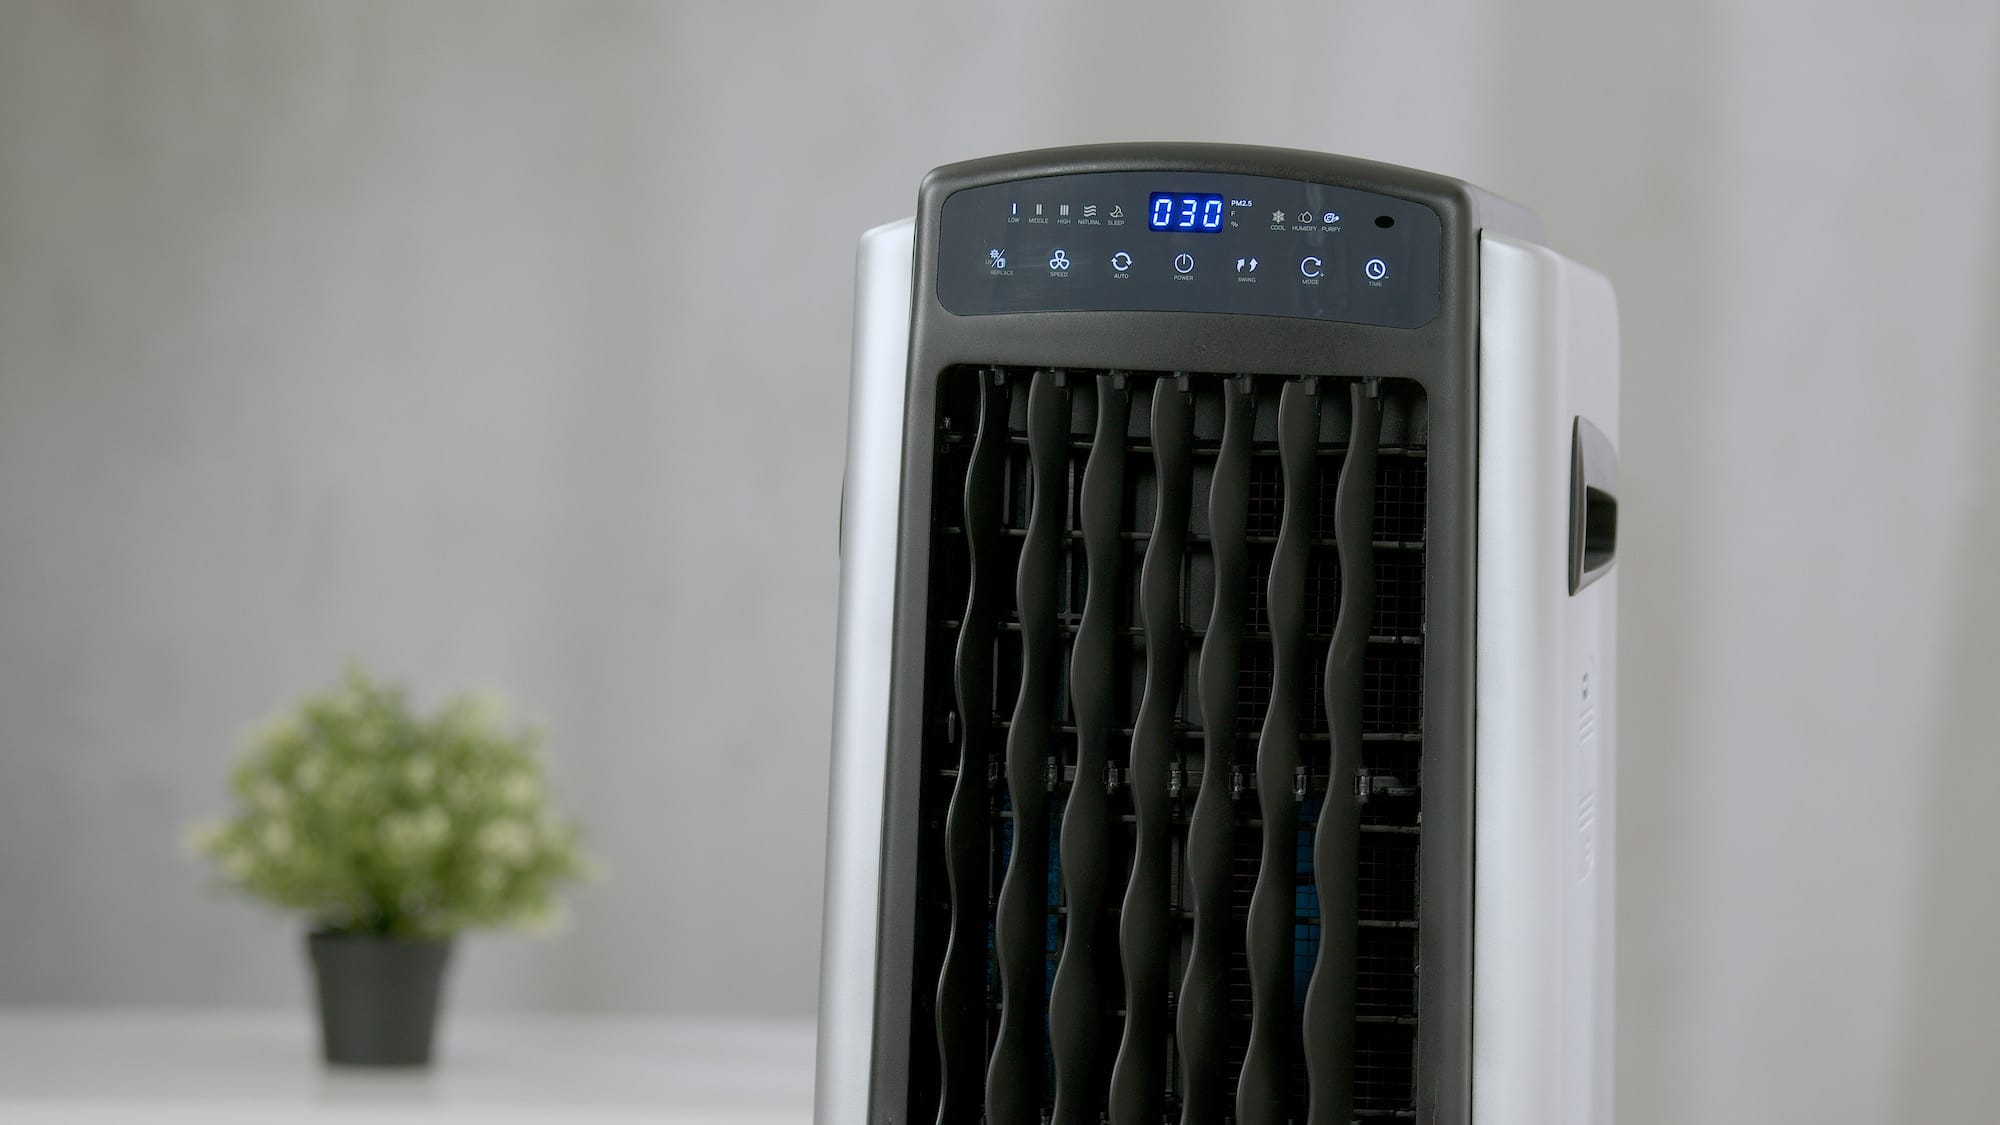 Quilo Aviance air purifier